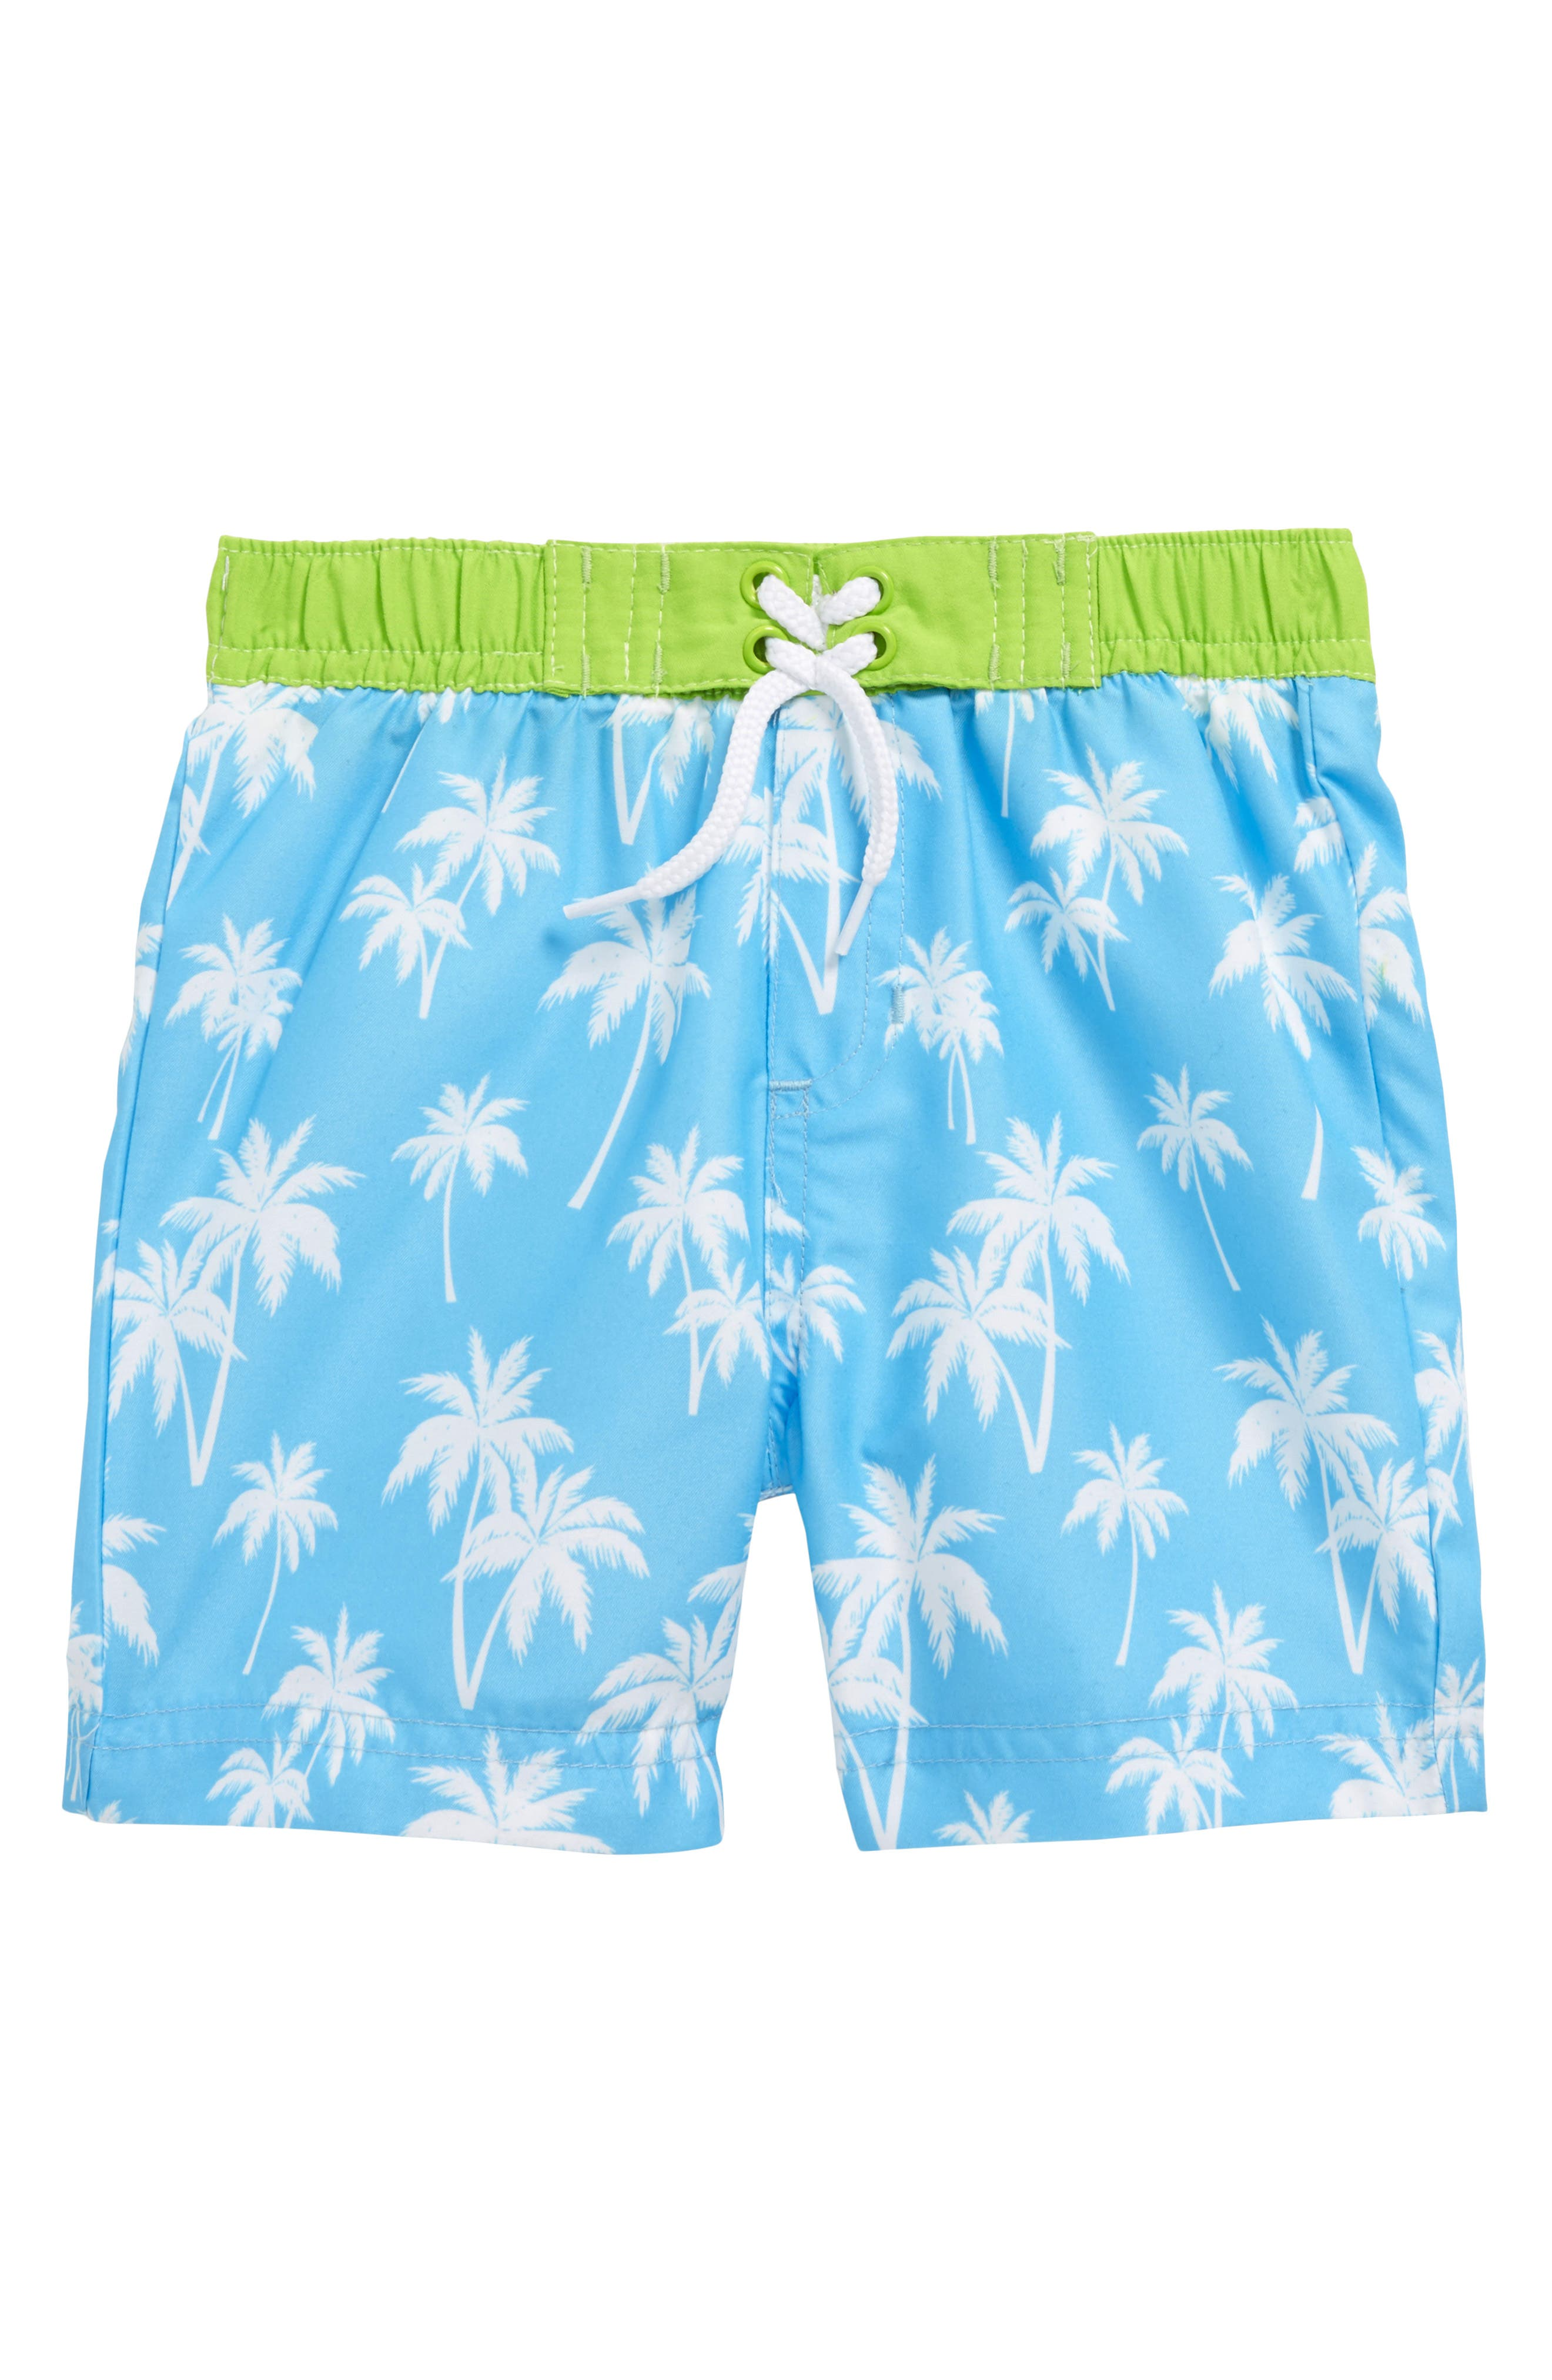 Main Image - Little Me Palm Tree Swim Trunks (Baby Boys)